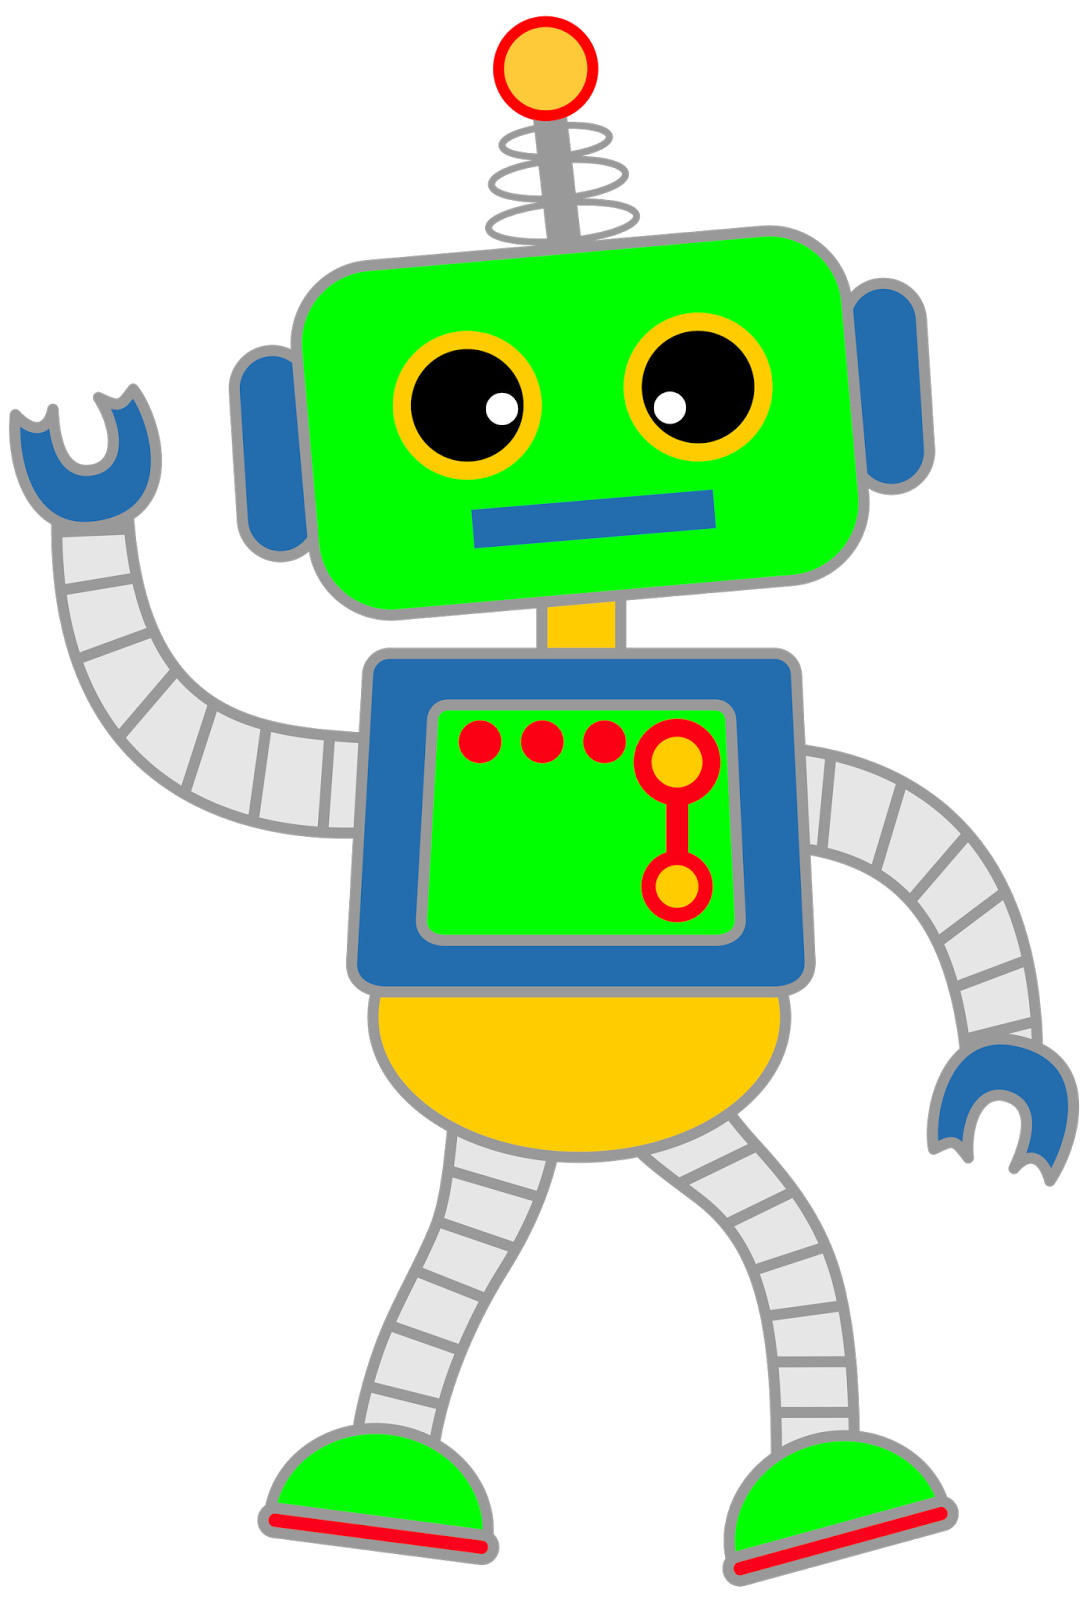 Club clipart lego robotics Classroom August/September Clipart Robot Treasures: